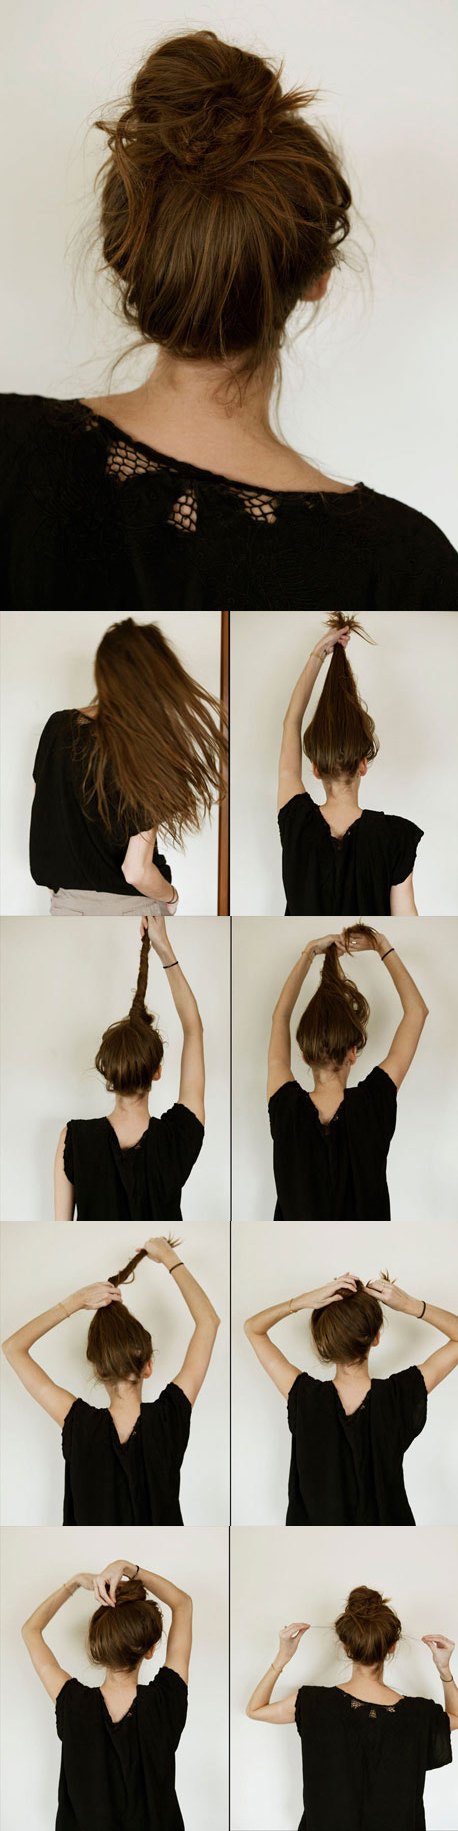 how to do twist hairstyles : super-easy-knotted-bun-updo-and-simple-bun-hairstyle-tutorials-718023 ...